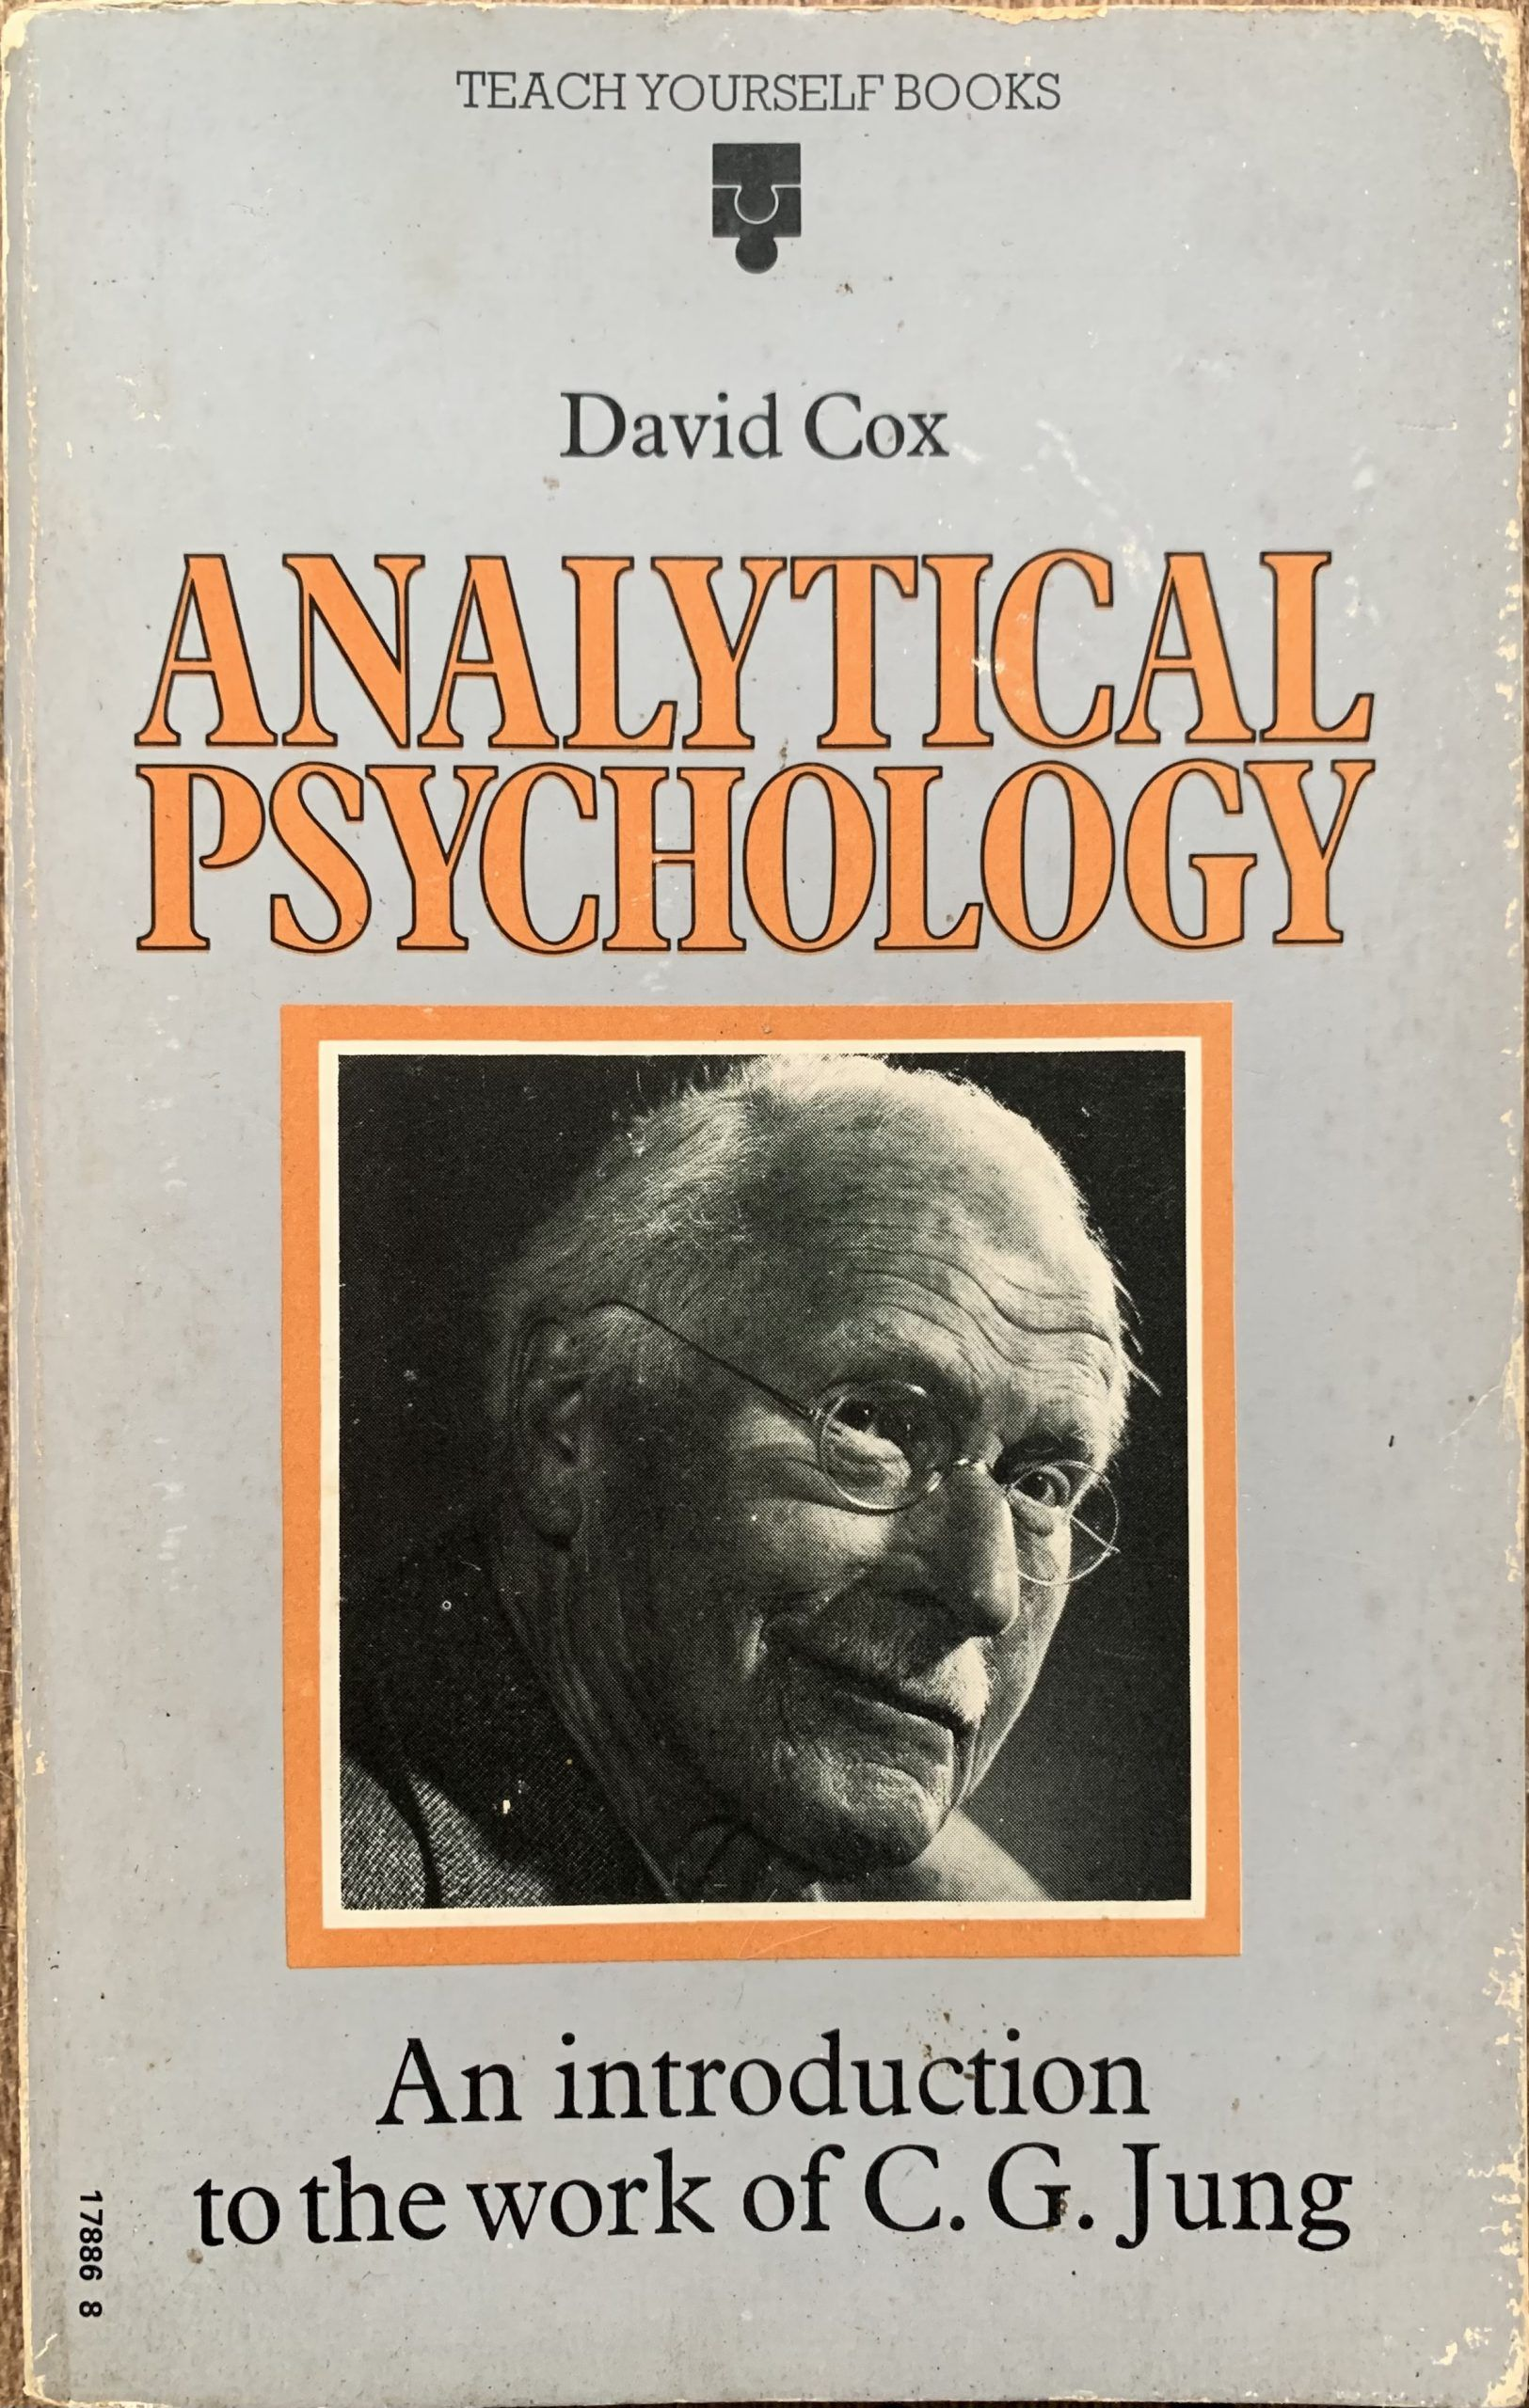 Analythical Psychology – An introduction to the work of C. G. Jung